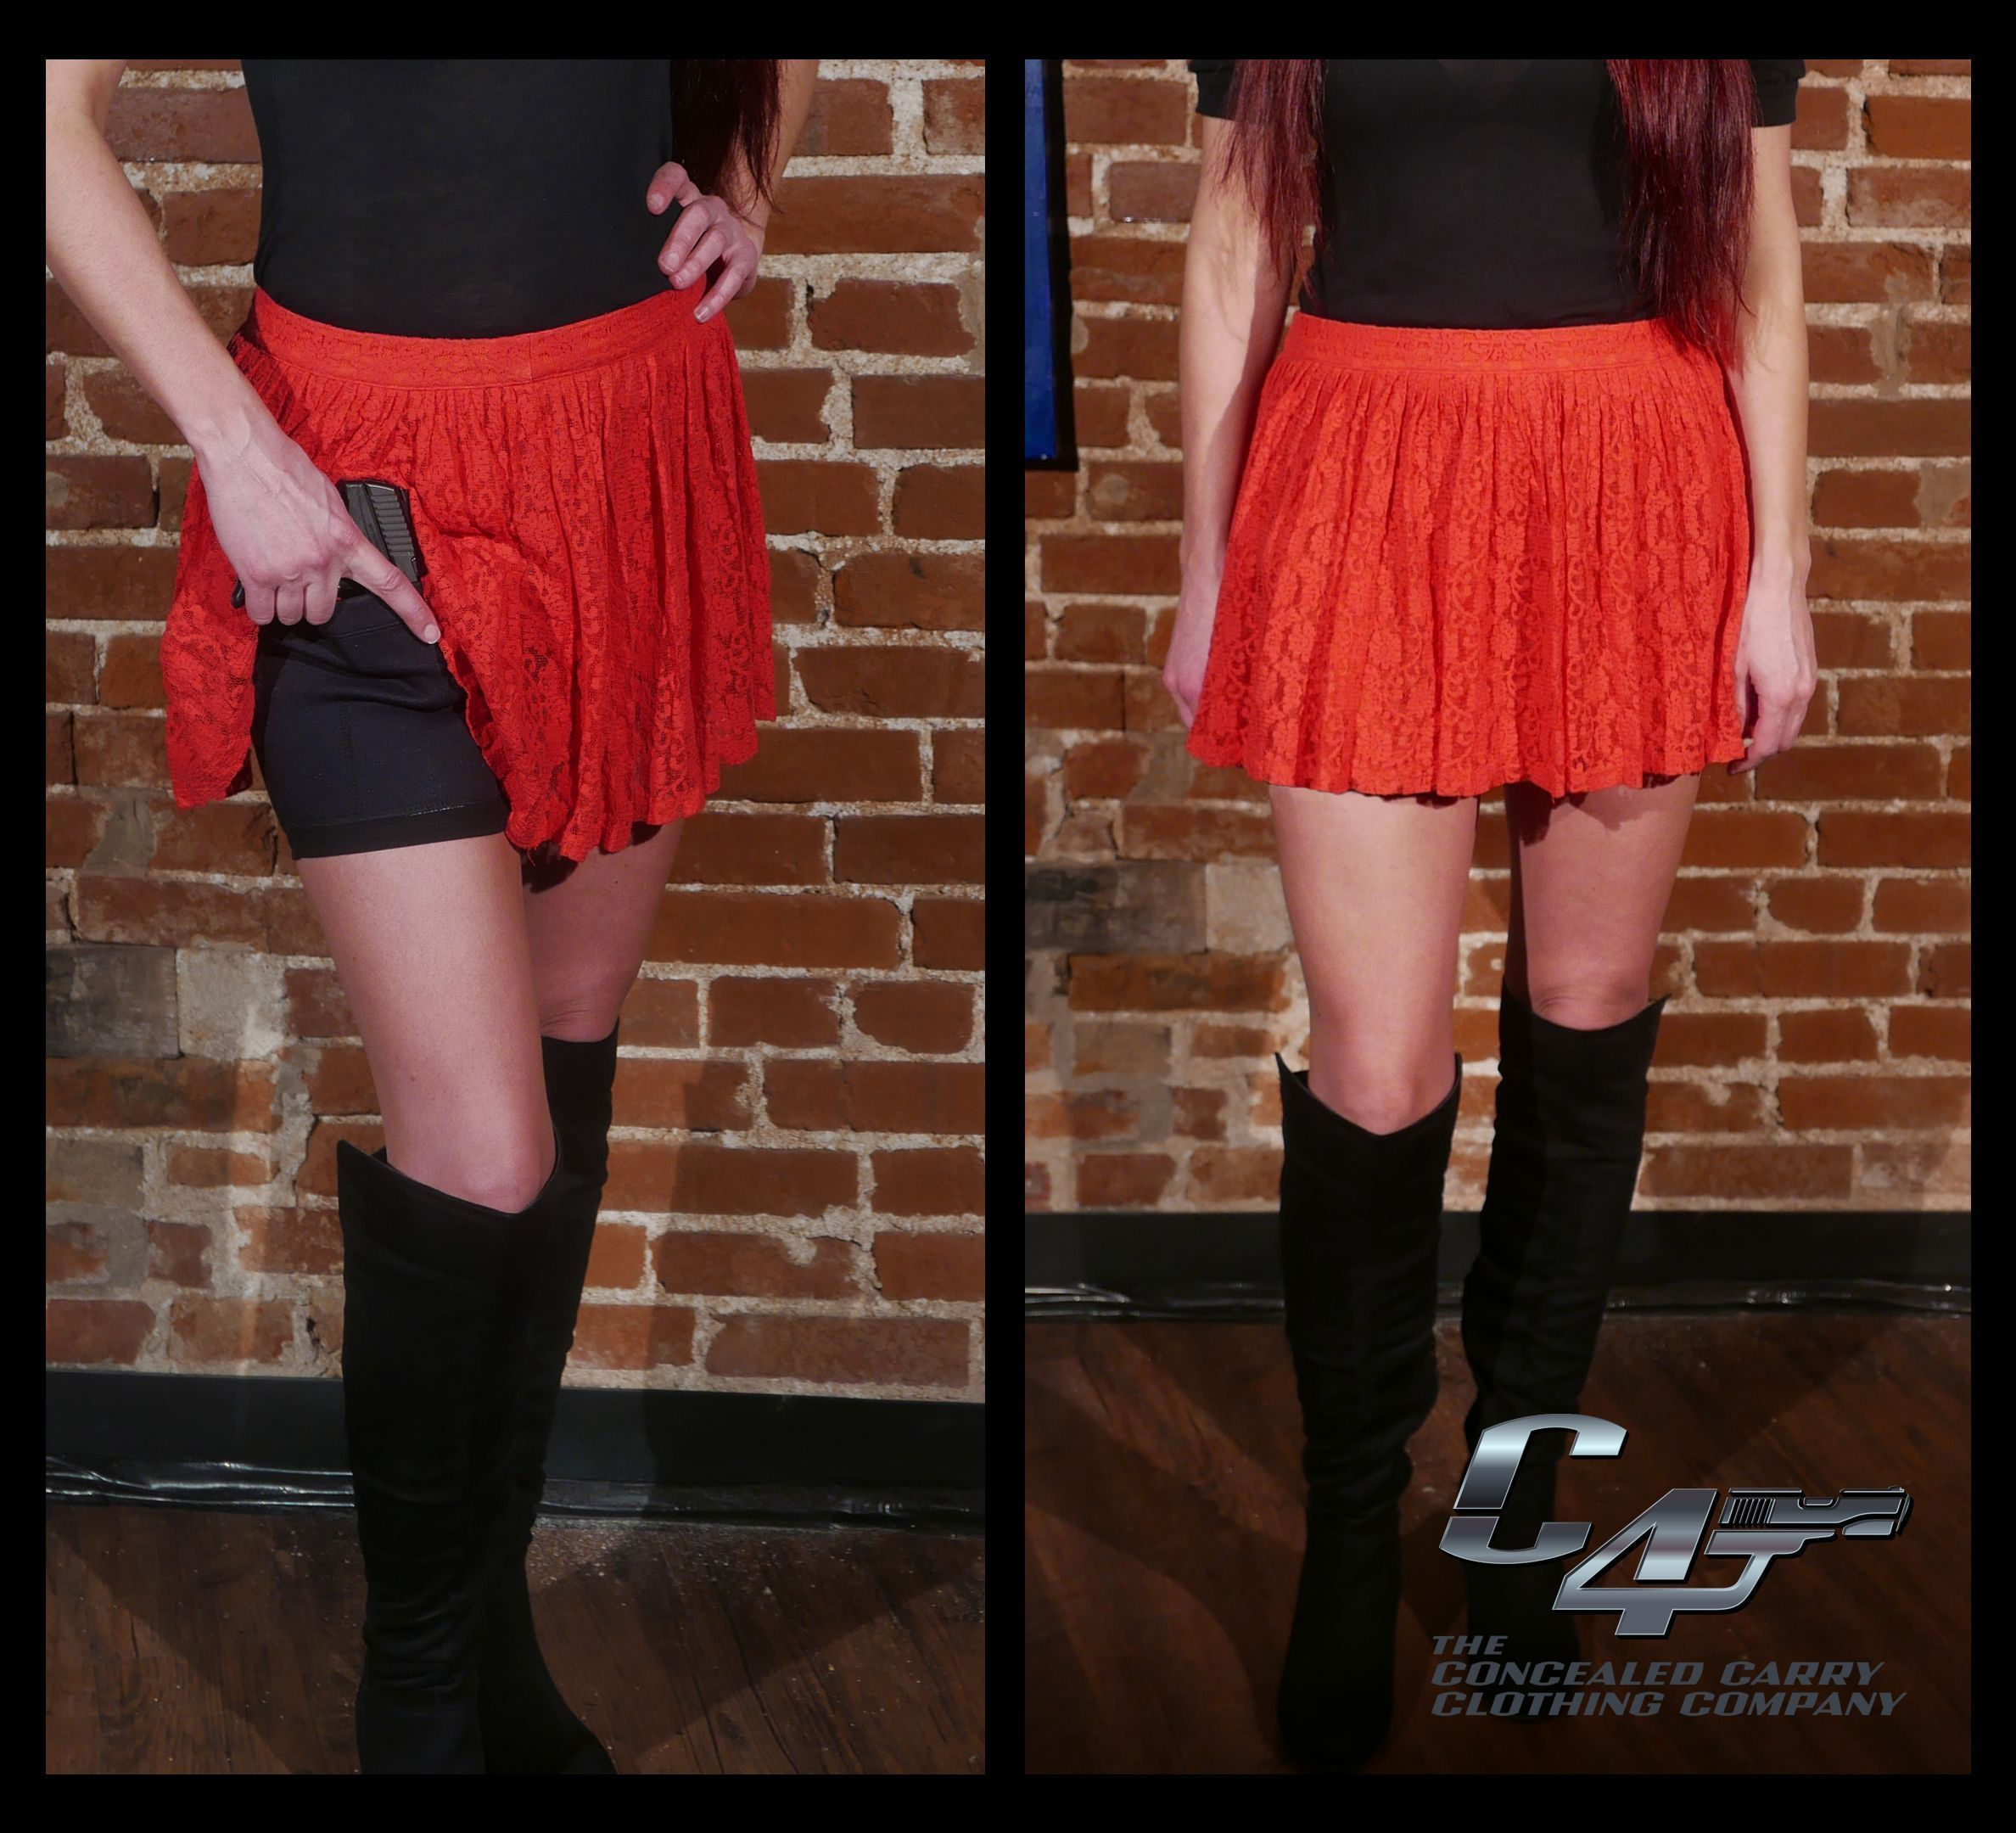 654433980ceb7 Super cute way to conceal carry under skirts and dresses!